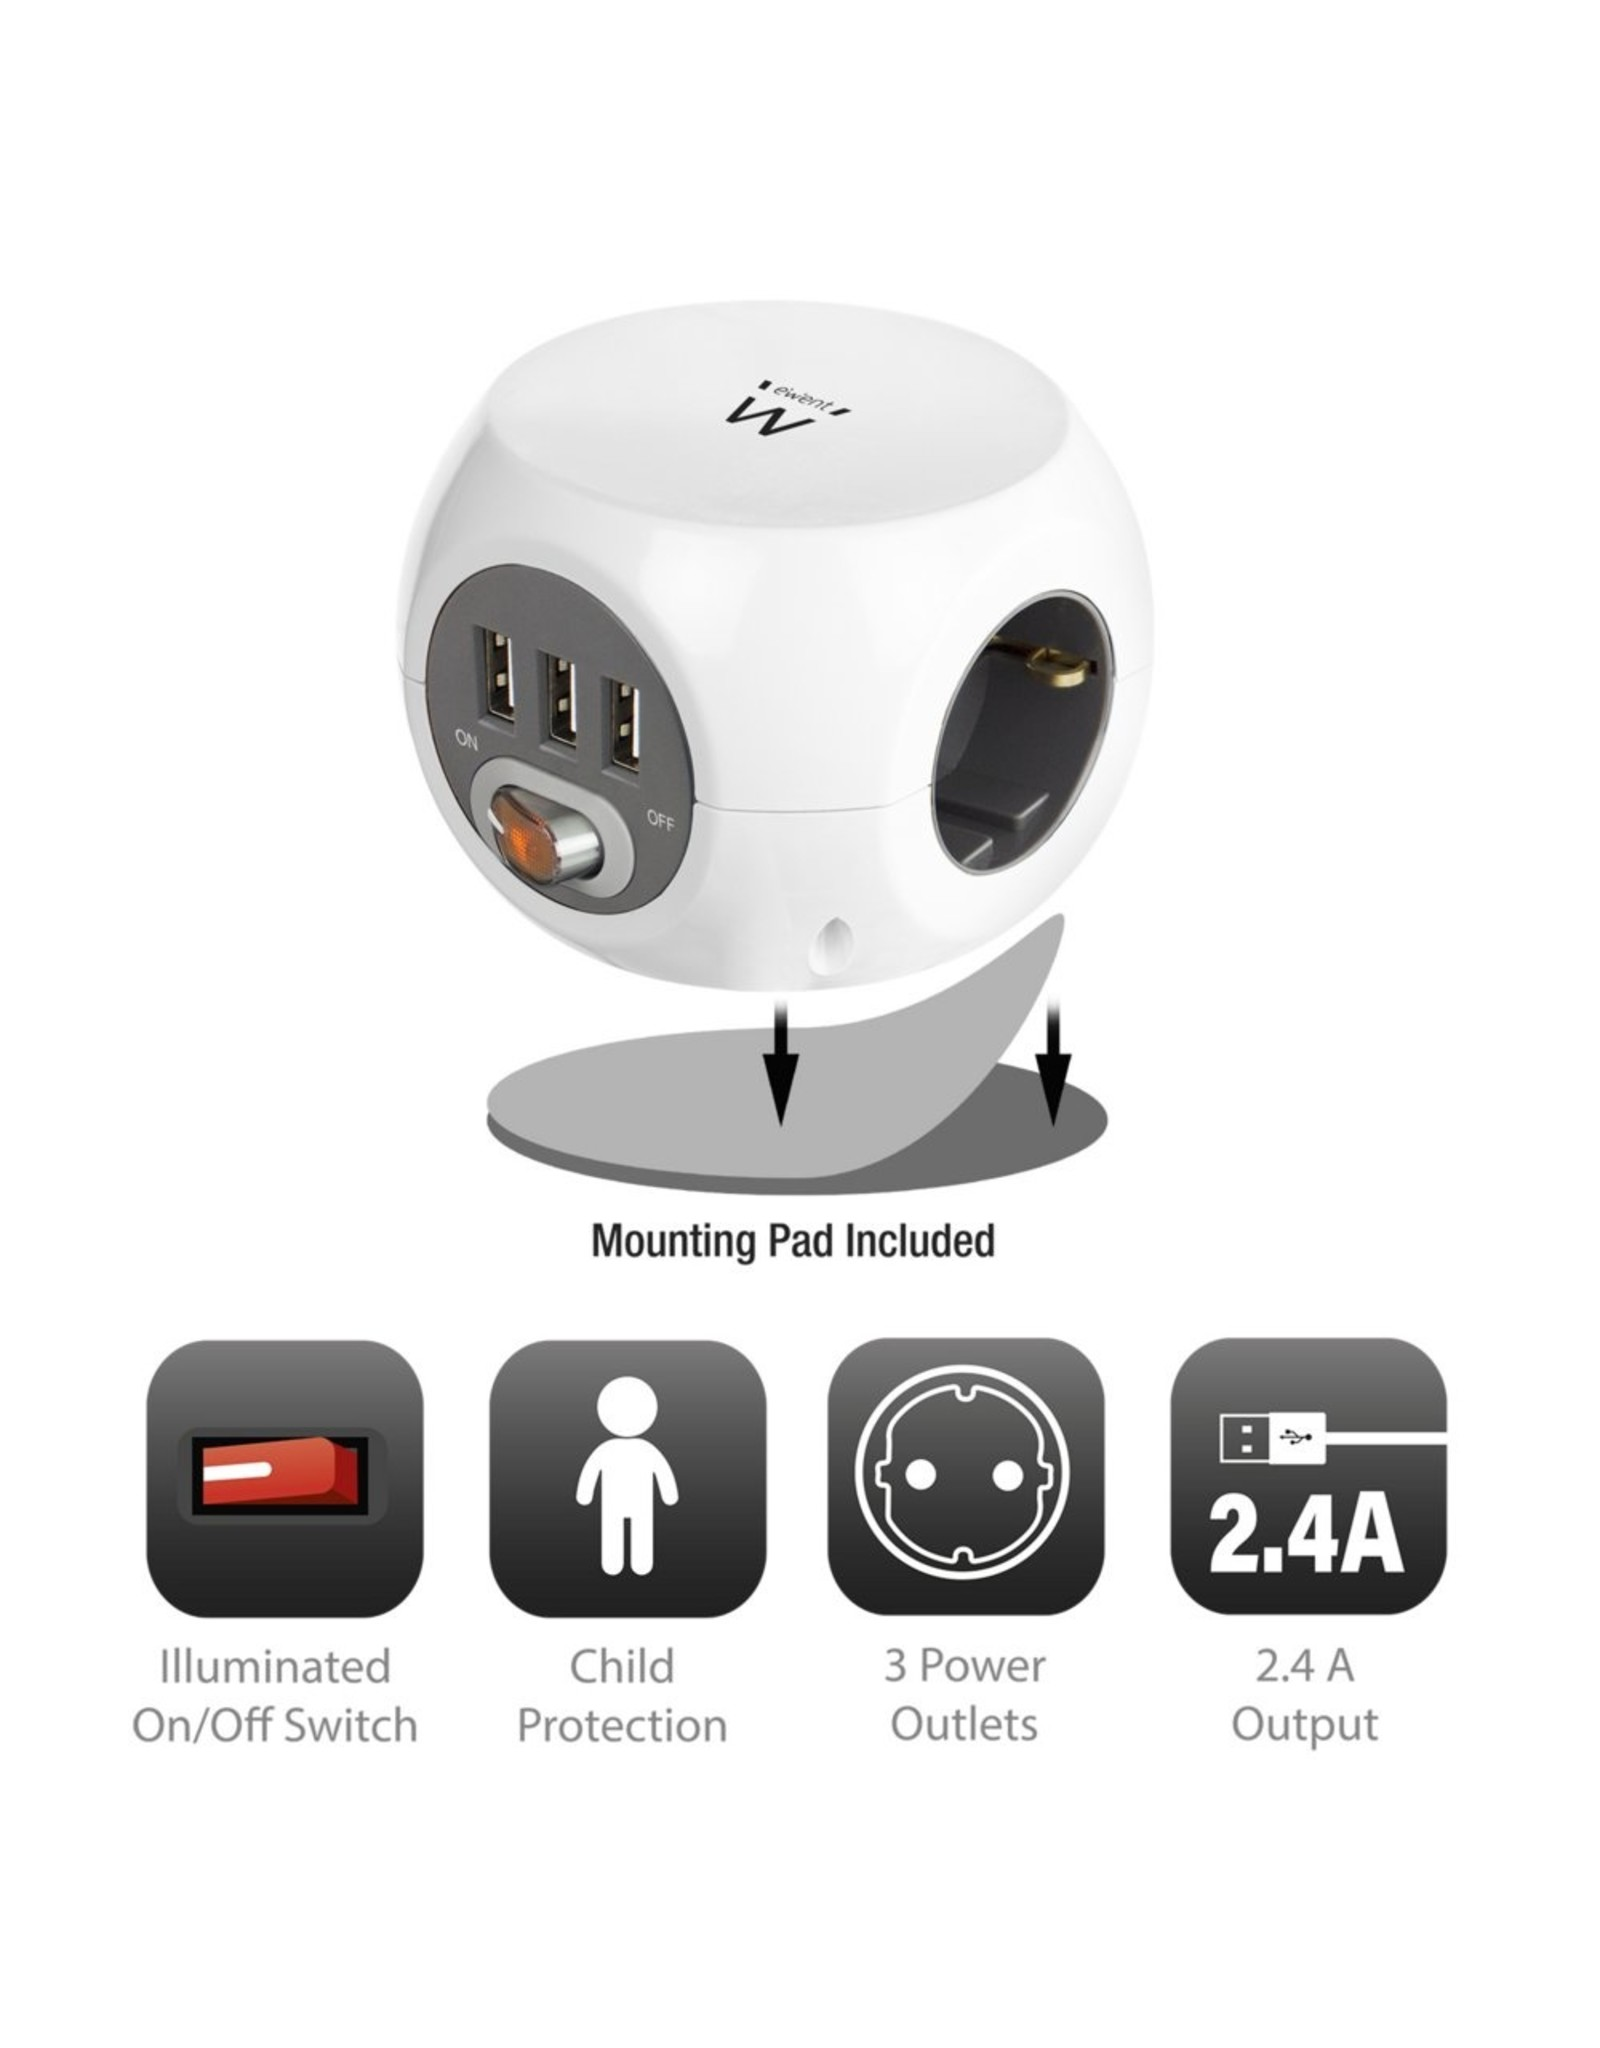 Ewent Power block 3 USB charging ports, 3 Outlets, white